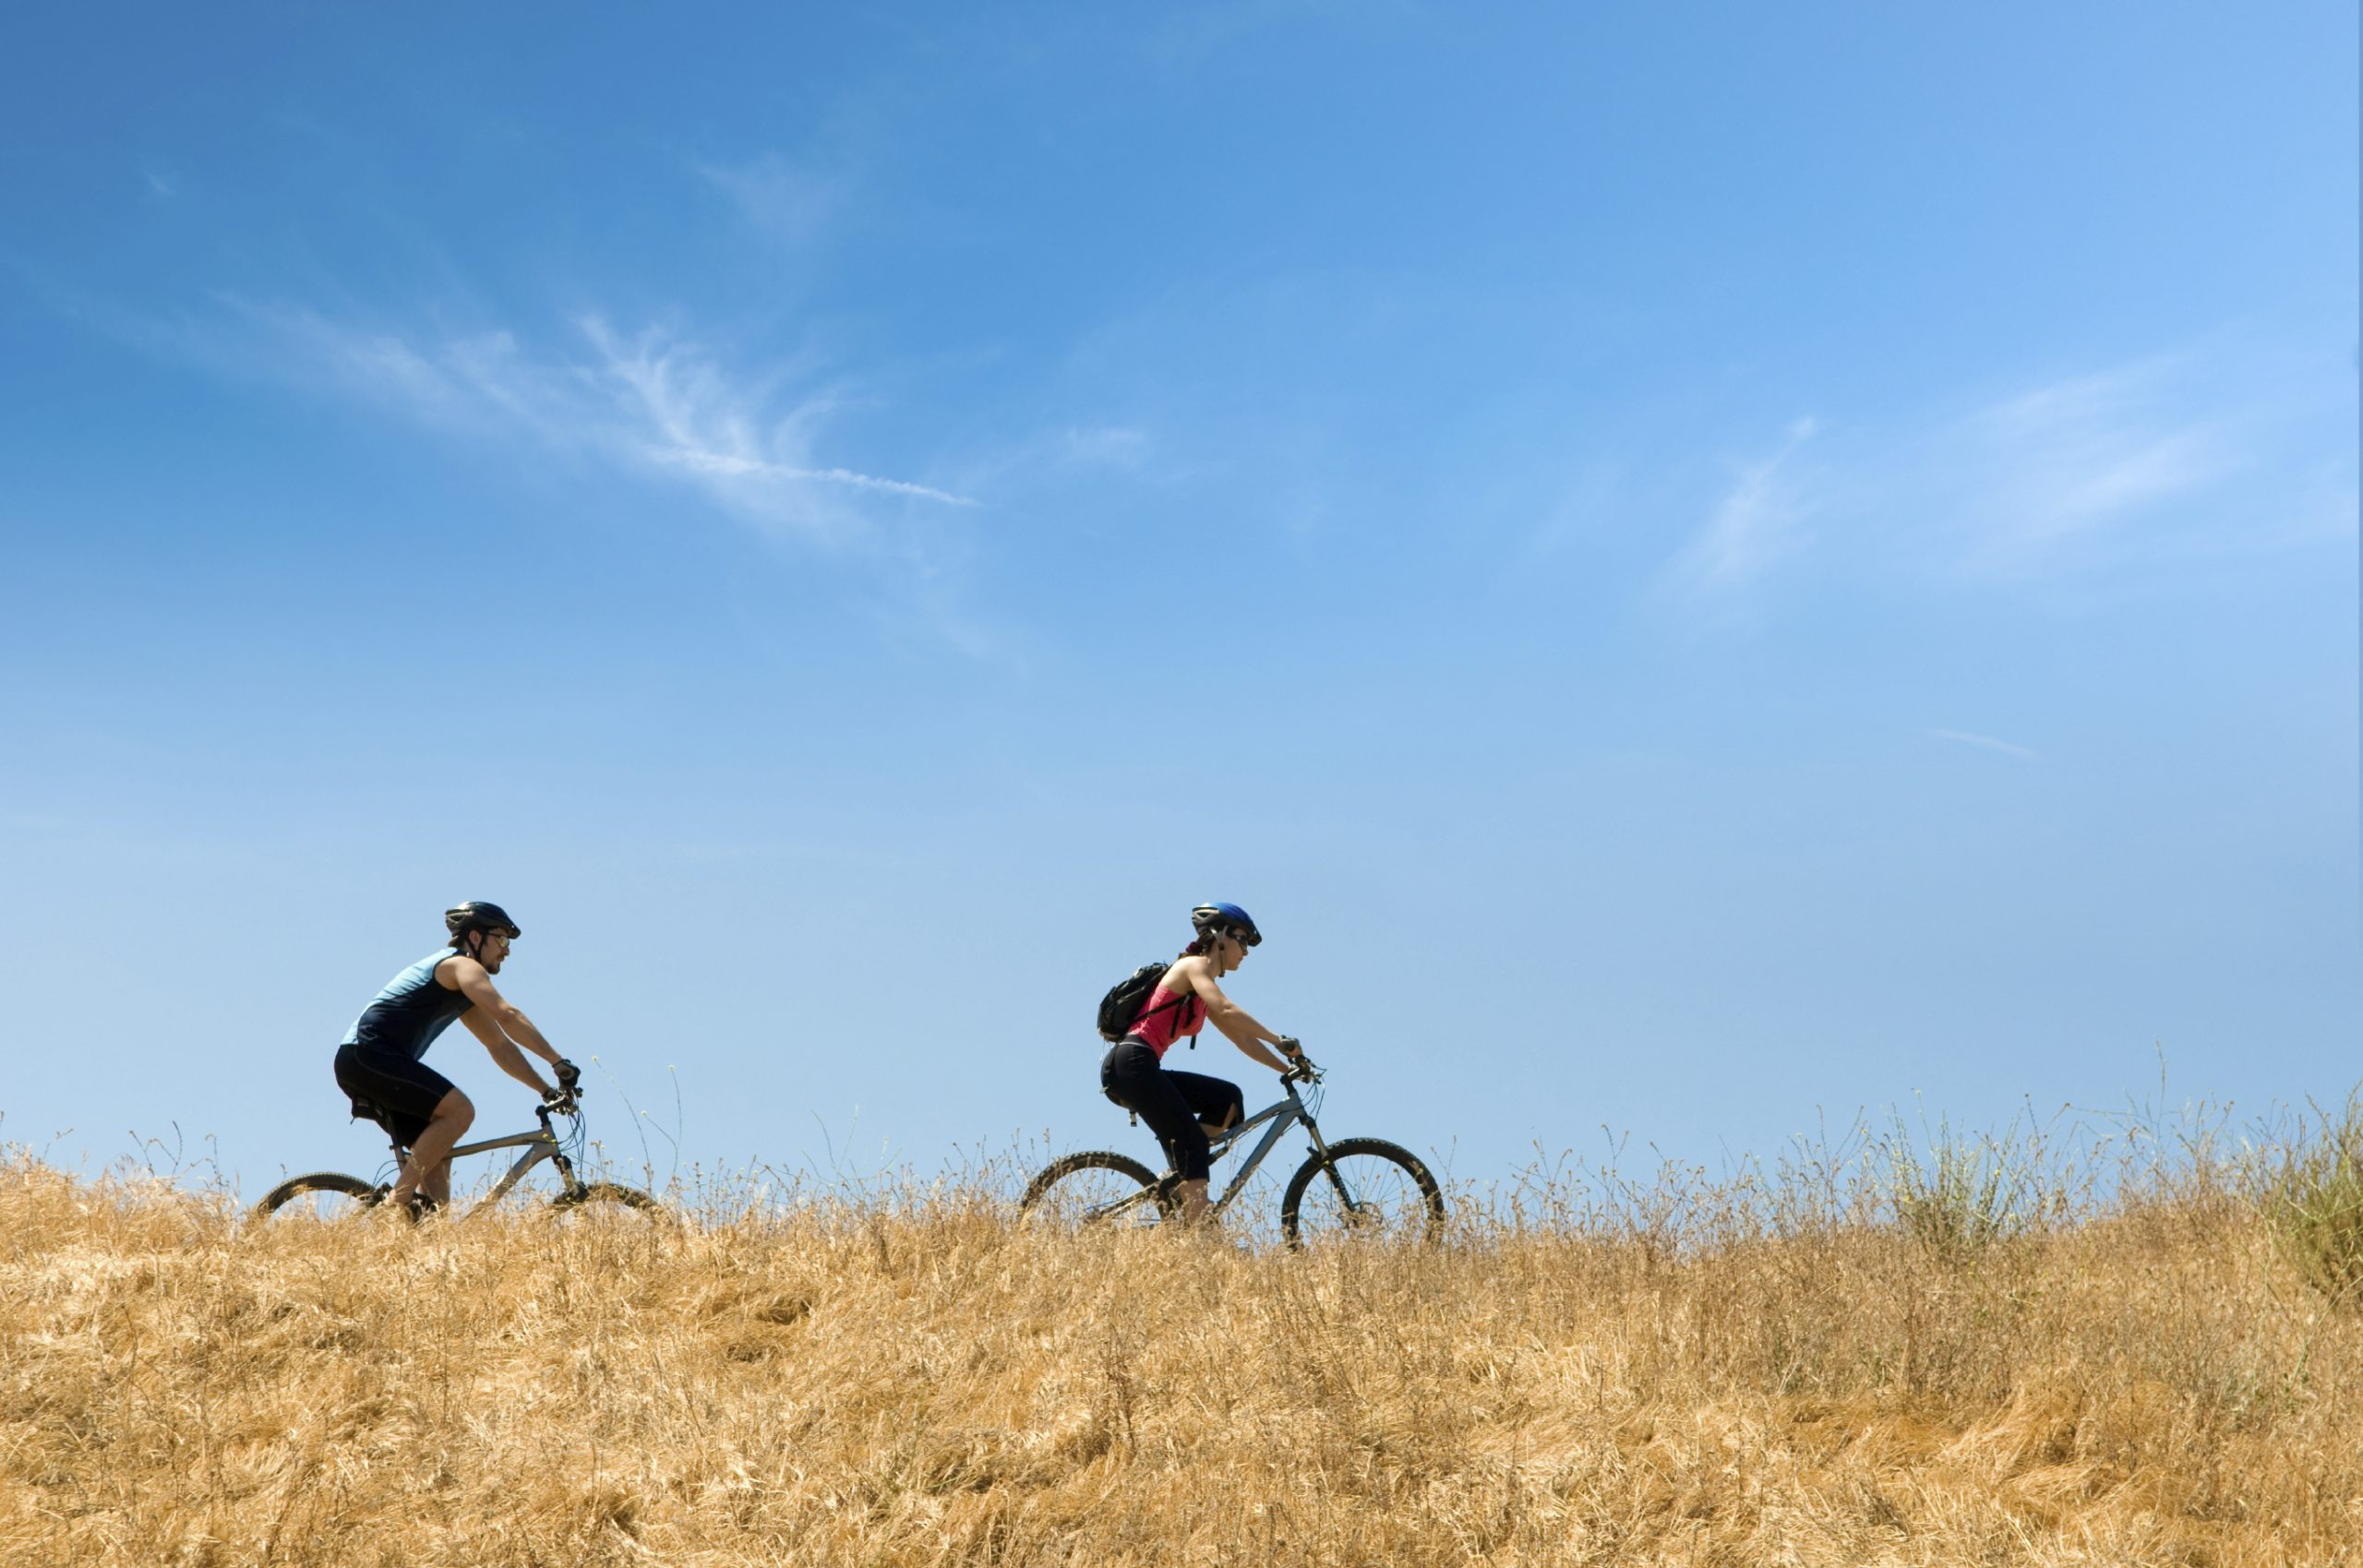 Two cyclists riding on a path